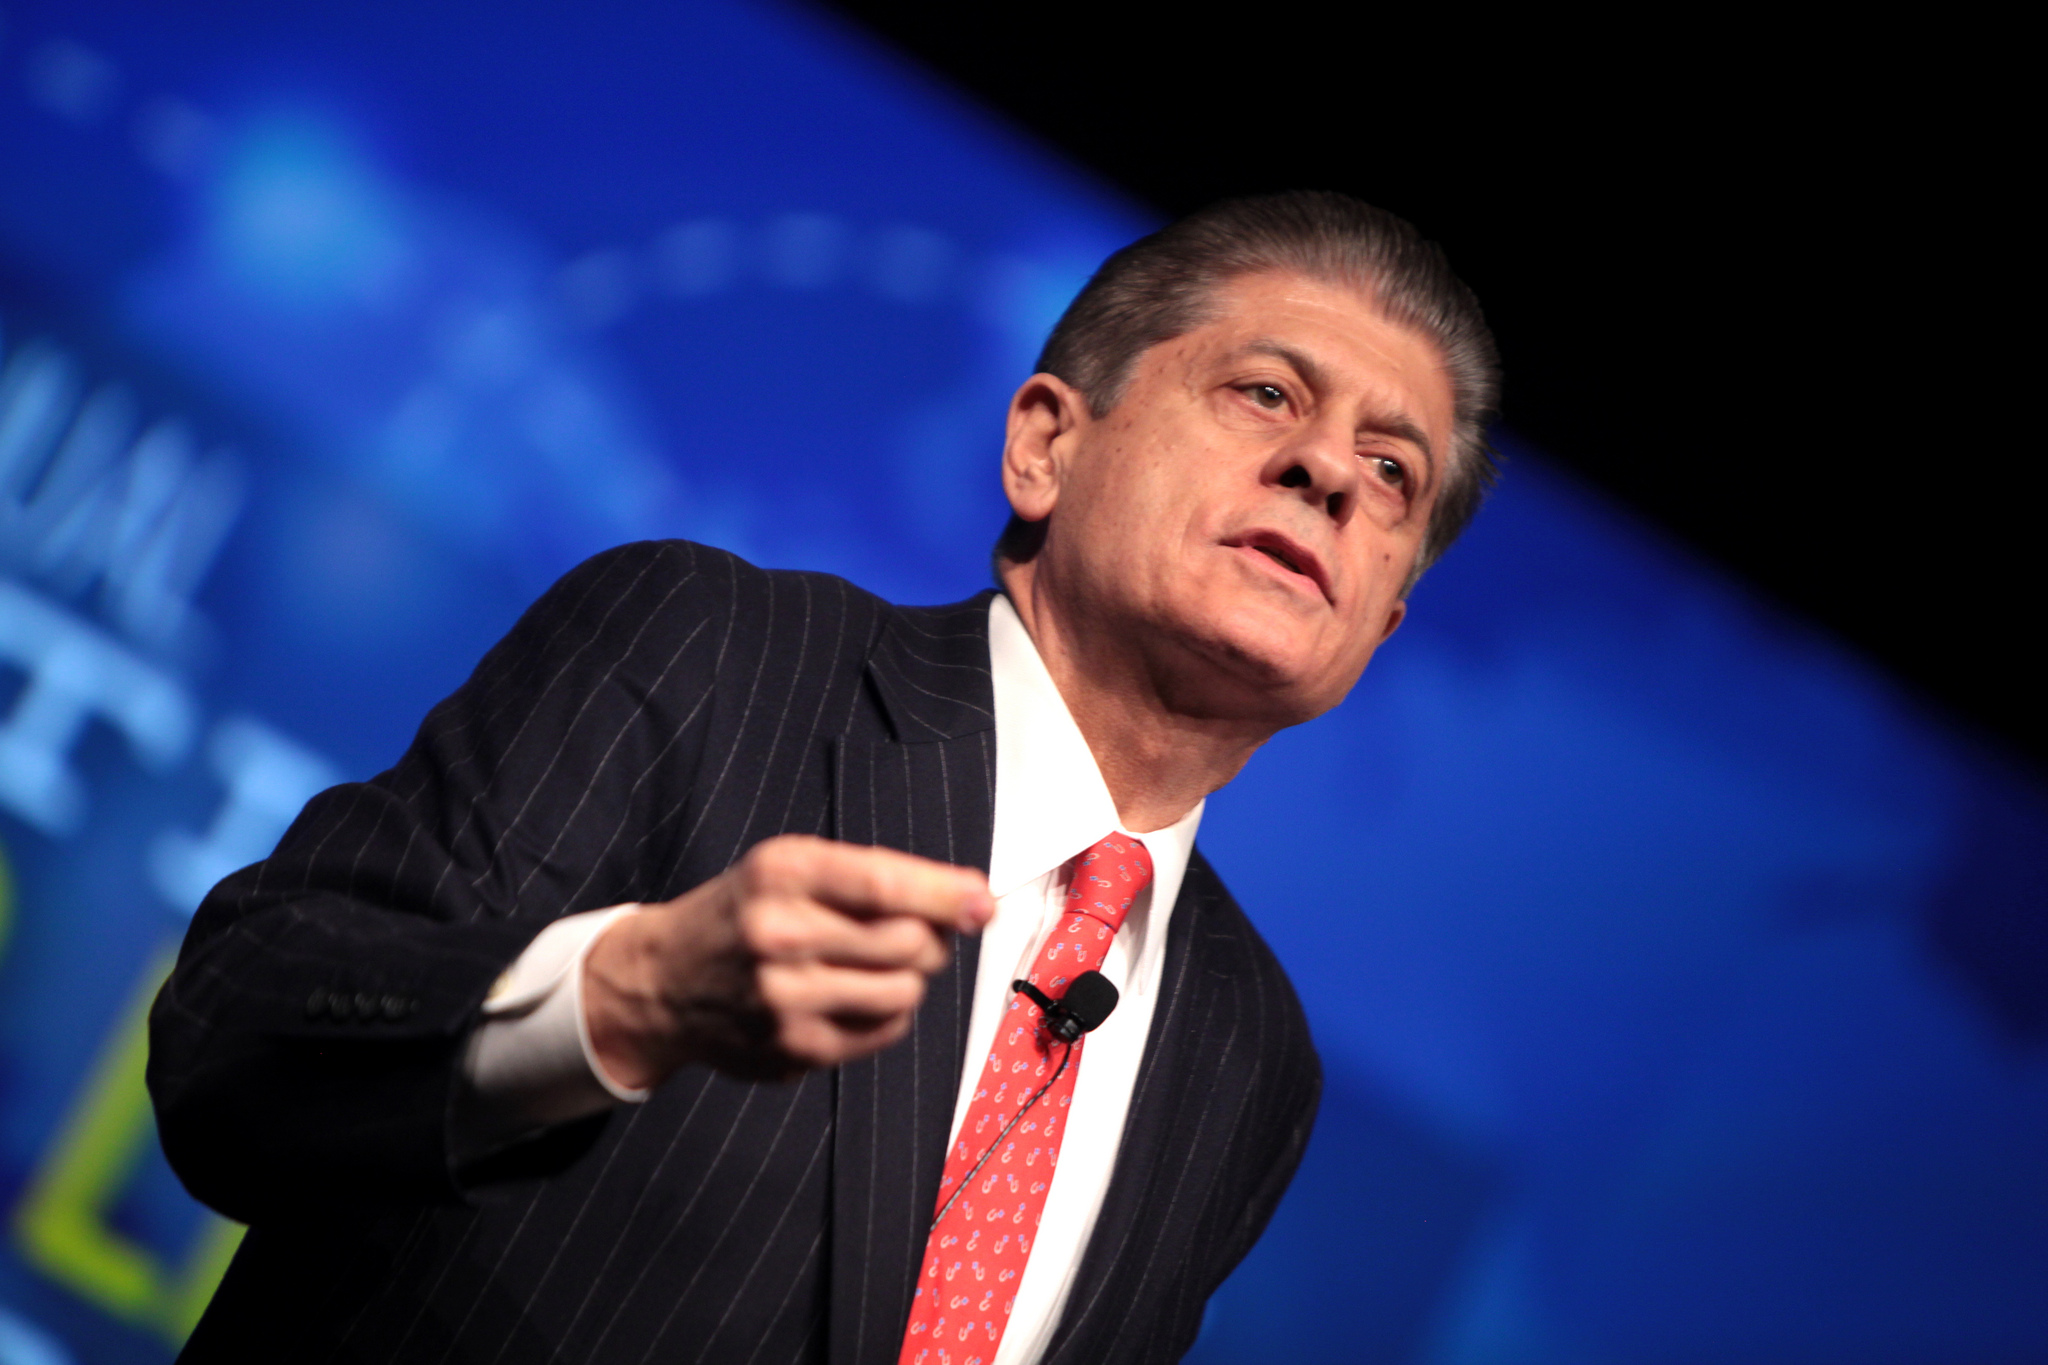 Image: Judge Napolitano Drops A Bomb: US Intelligence Was Behind Hacks — Not Russia (Video)